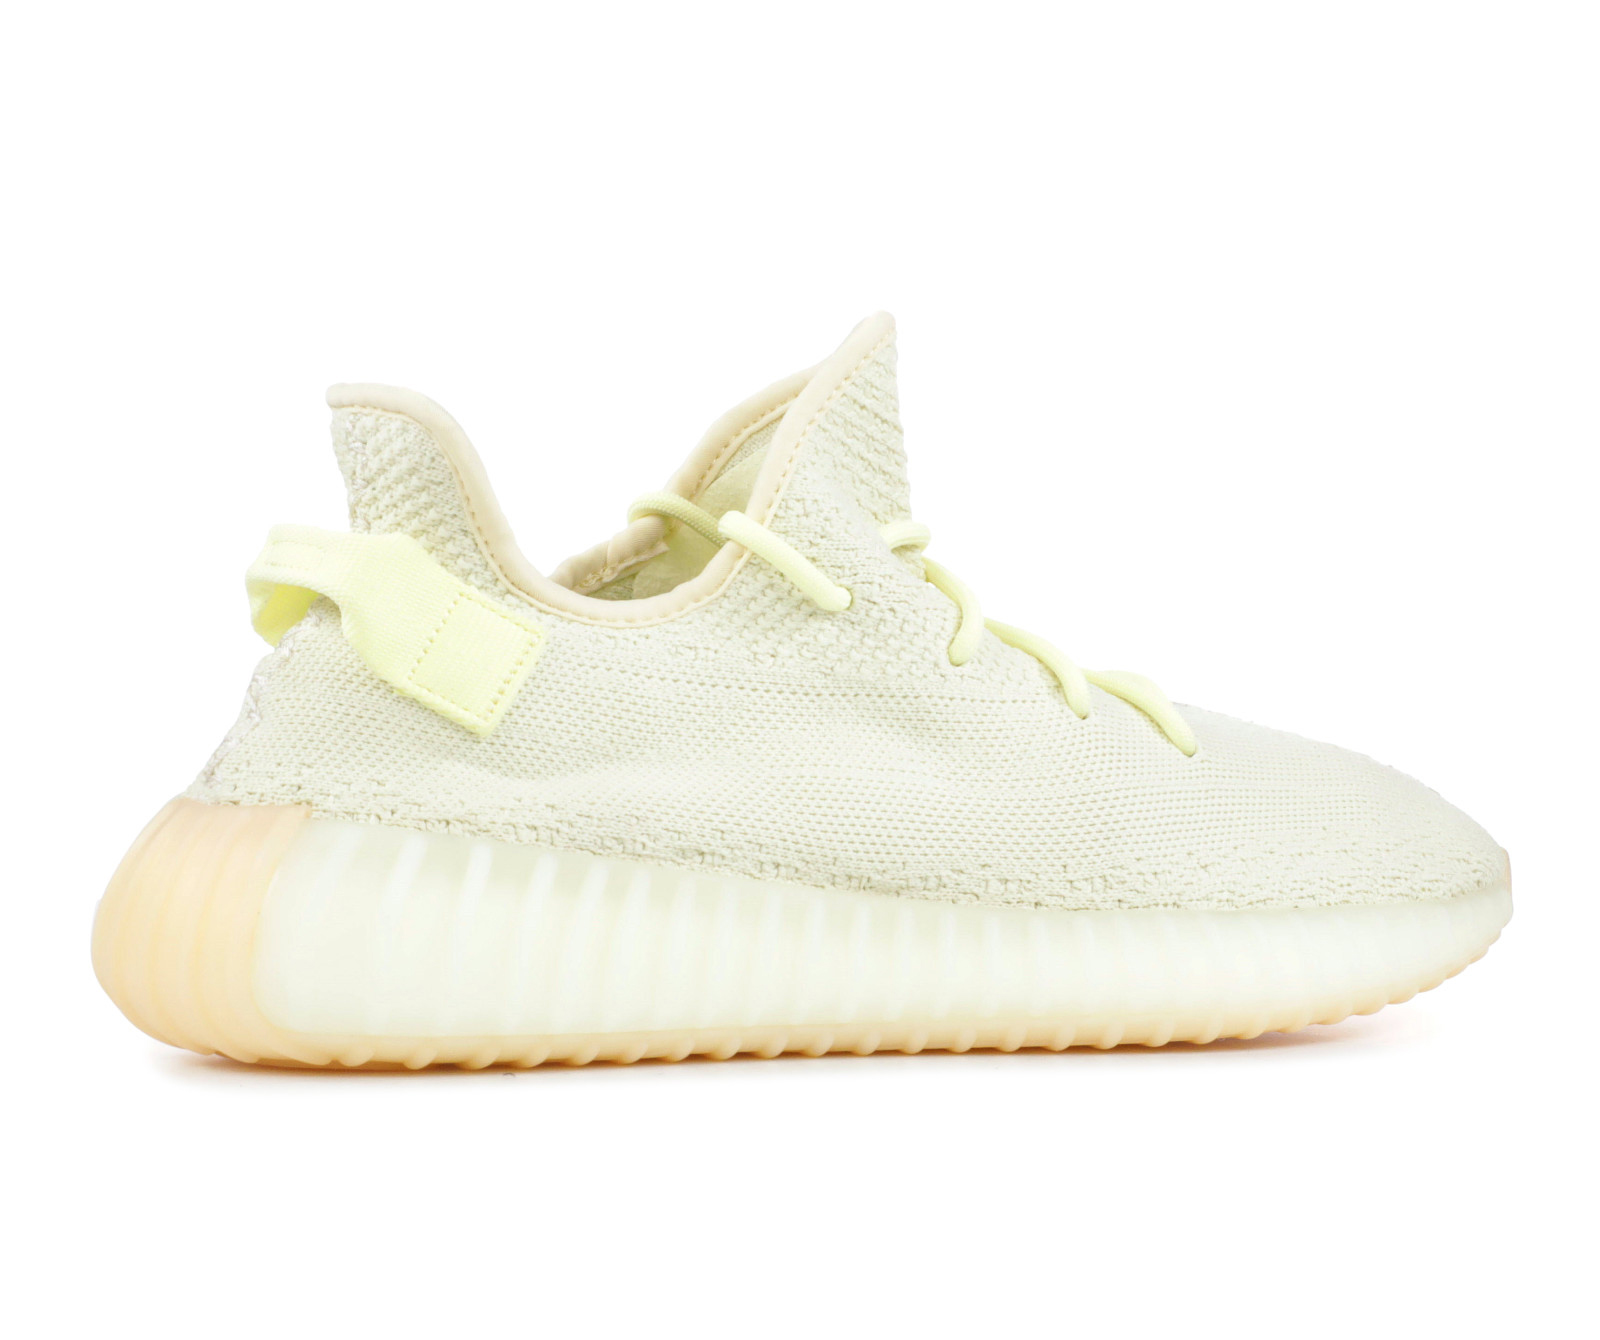 bc43cb5800682 Feezy Boost 350 V2 - Butter — Buy Feezys - Feezys You Can Trust